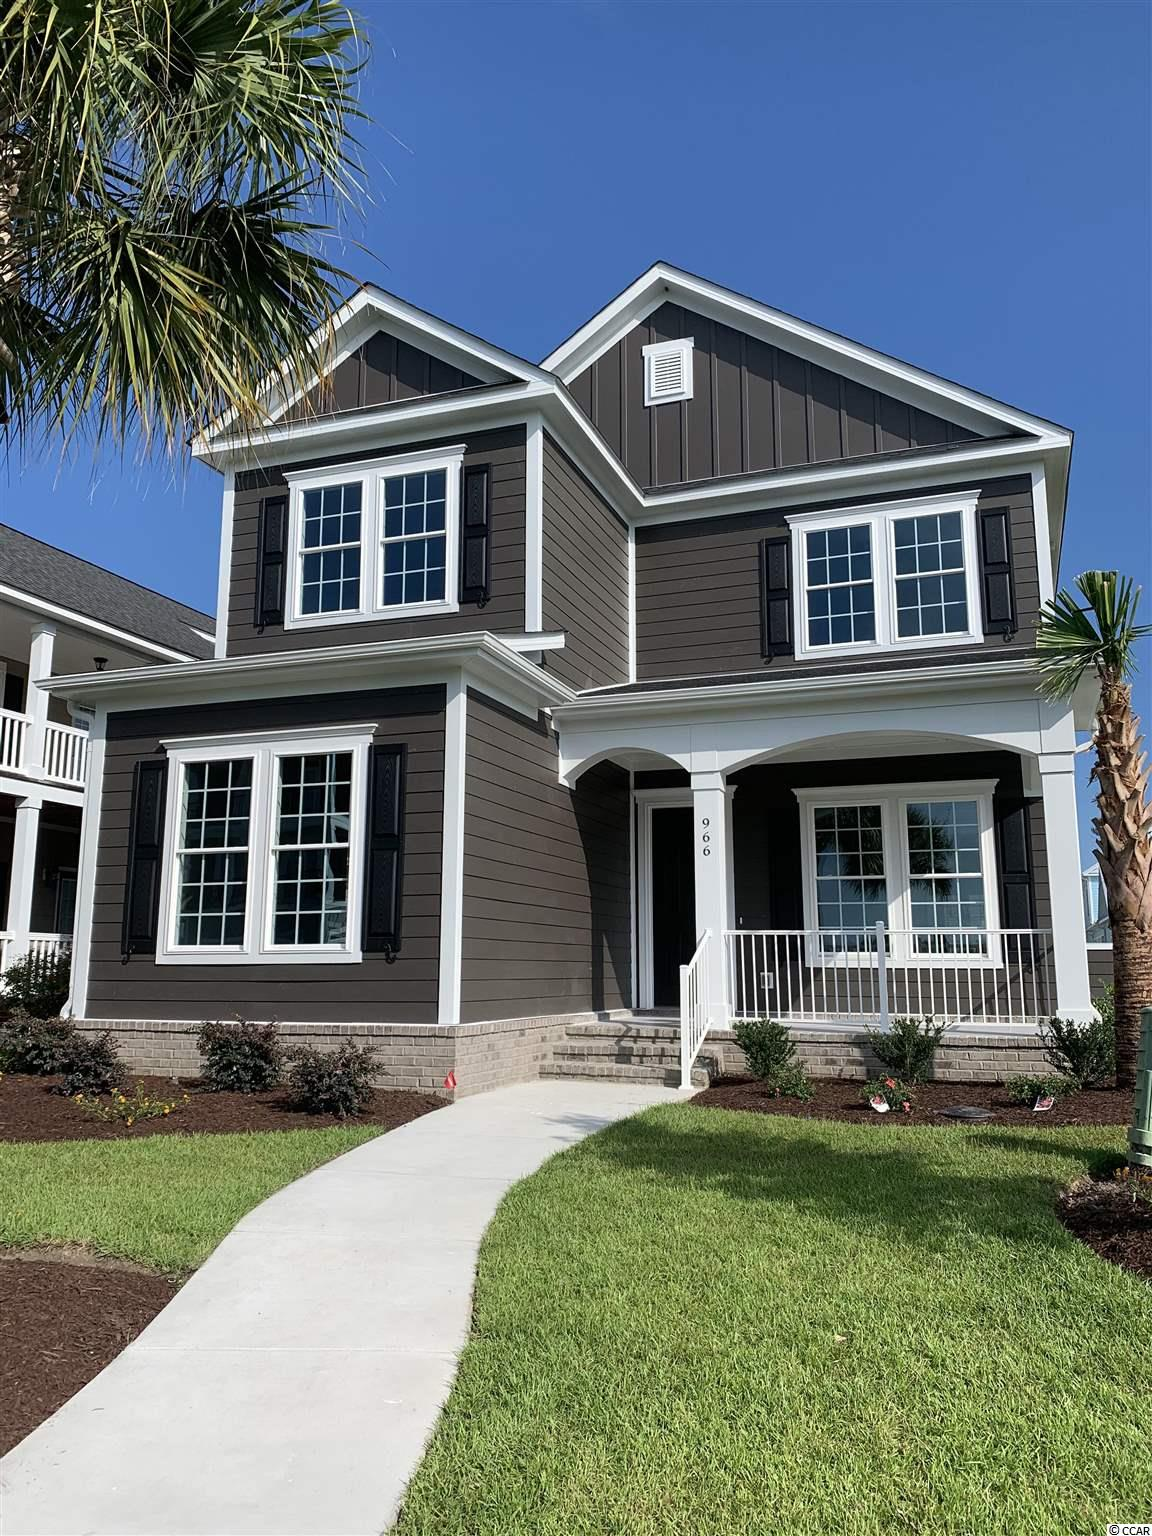 A beautiful custom built home located in the gated Waterway Palms Plantation Subdivision. The home is under construction and anticipated to be completed in a few months. The home will great you with so many beautiful features to mention, and not one thing was overlooked. As you enter the home you will be taken away by a beautiful custom trim moldings and custom paneling in the hallway and formal dining room. This gorgeous home offers an open concept floor plan: living room with coffered ceilings, electric fireplace, a dream kitchen with 42'soft close kitchen cabinets, Whirpool stainless steel appliances, granite counter tops in the kitchen tiled back splash, breakfast nook, walk in pantry, butlers pantry , crown moldings, 7' baseboards and Recess Lighting (LED energy efficient lights) rounded corners, tray ceilings in the master bedroom. You also will find a very generous size laundry room with a granite counter tops and cabinets. Master suite offers beautiful walk - in closet, and spectacular bathroom with a garden tub and a huge walk- in shower with frame less shower glass, soft close cabinets with double vanities with counter tops and linen closet. Second floor upstairs has split bedroom plan and Cozy loft area. Bedrooms upstairs has it's own en suite bathrooms with beautifully tiled showers and bathtubs. A three point drop has system was installed that stove can be converted into a gas, as well as fireplace and outdoor grill. A very well manicured landscaping with beautiful palm trees situated in the very front of the home, irrigation system. The home is located close to schools, Tanger Outlets, Mall, airport, beach and restaurants. Do not wait to call this home yours.